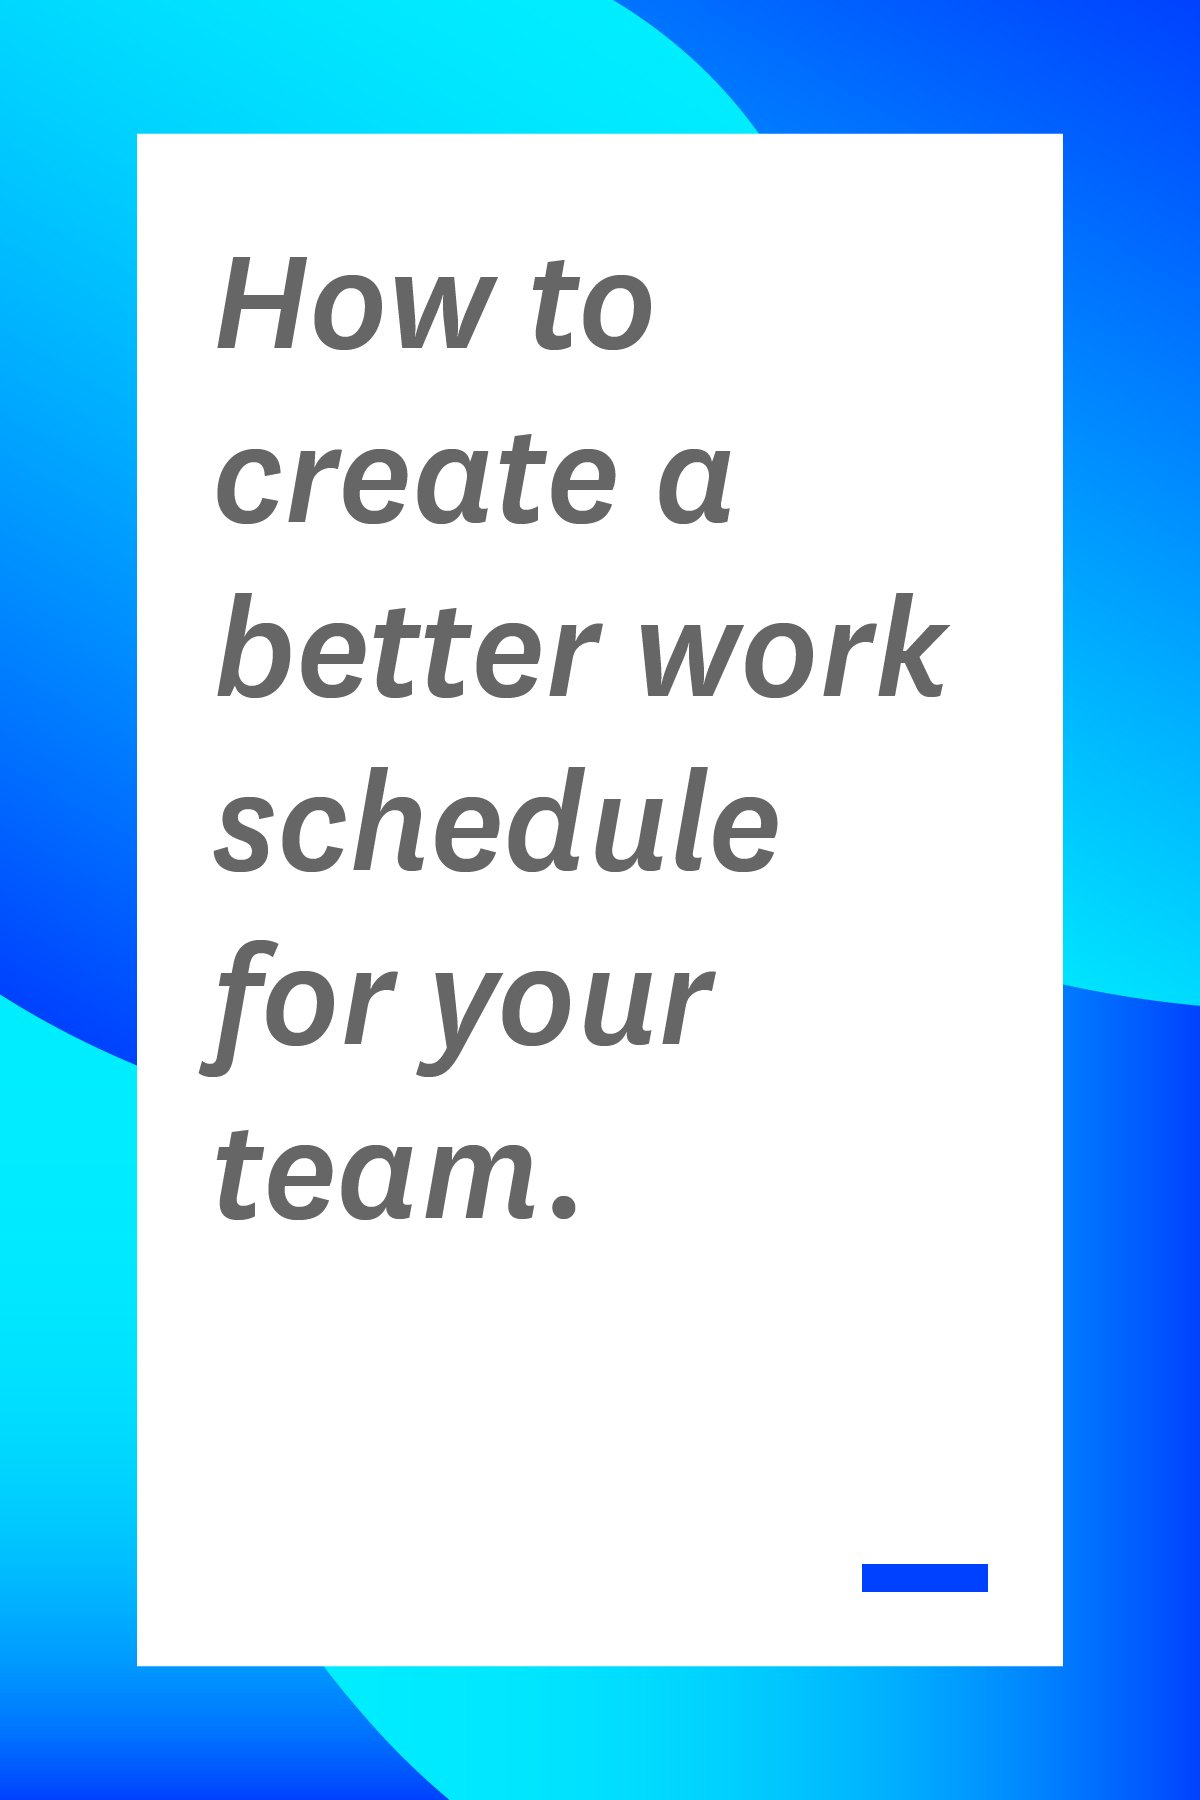 If you're a manager or team lead and you want to improve productivity, while still making your team happy, use the tips to create a better work schedule for your team. #workschedule #manager